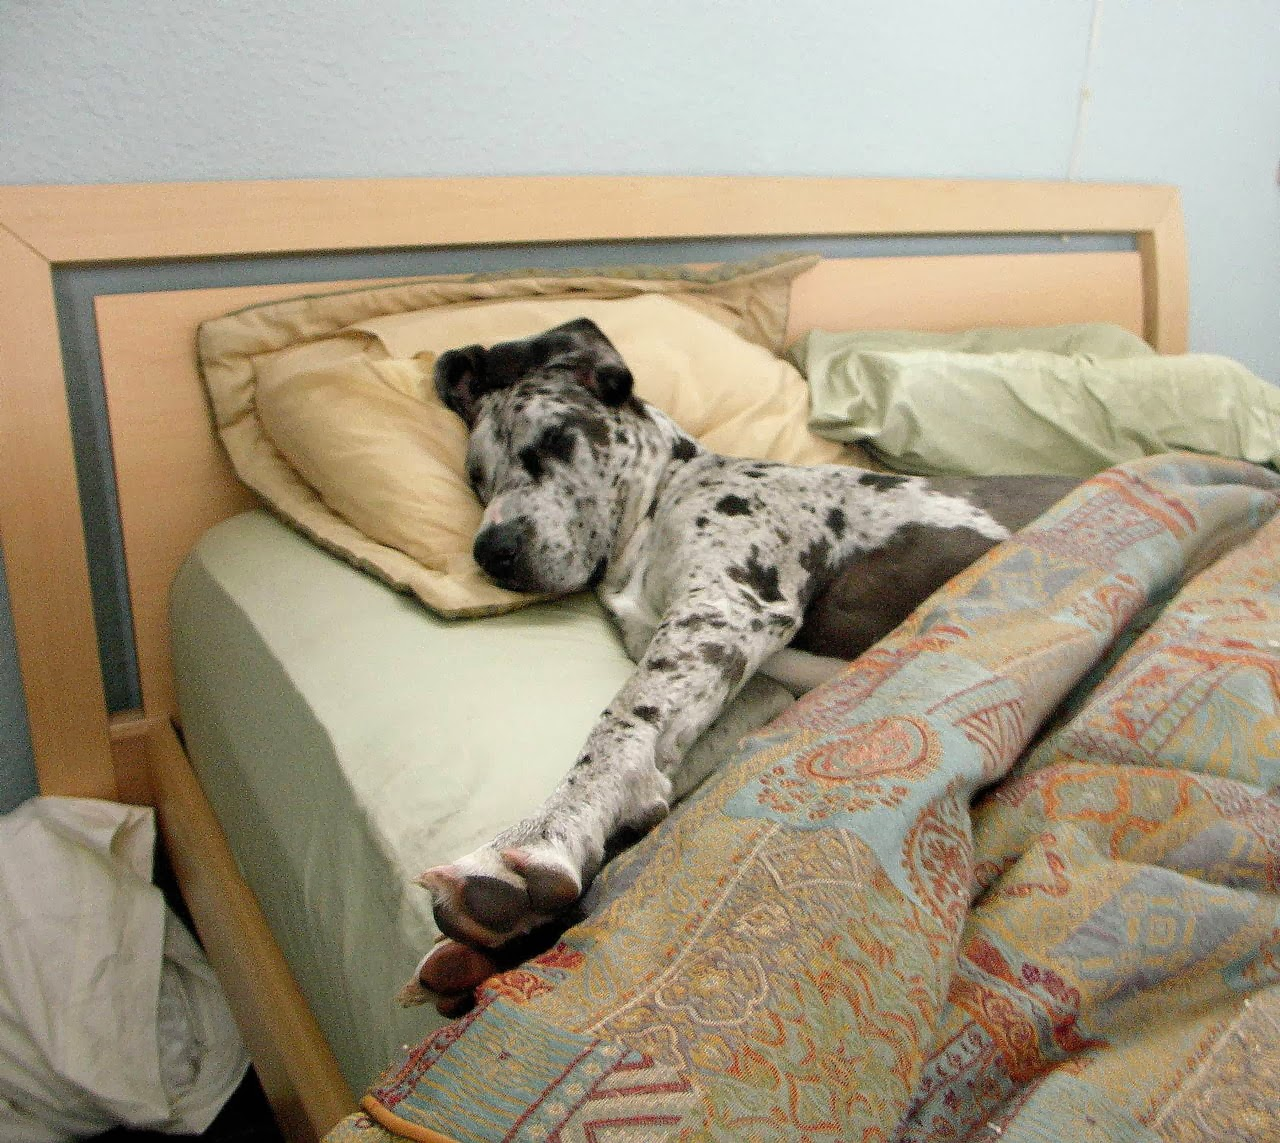 Cute dogs - part 11 (50 pics), dog sleeps in bed